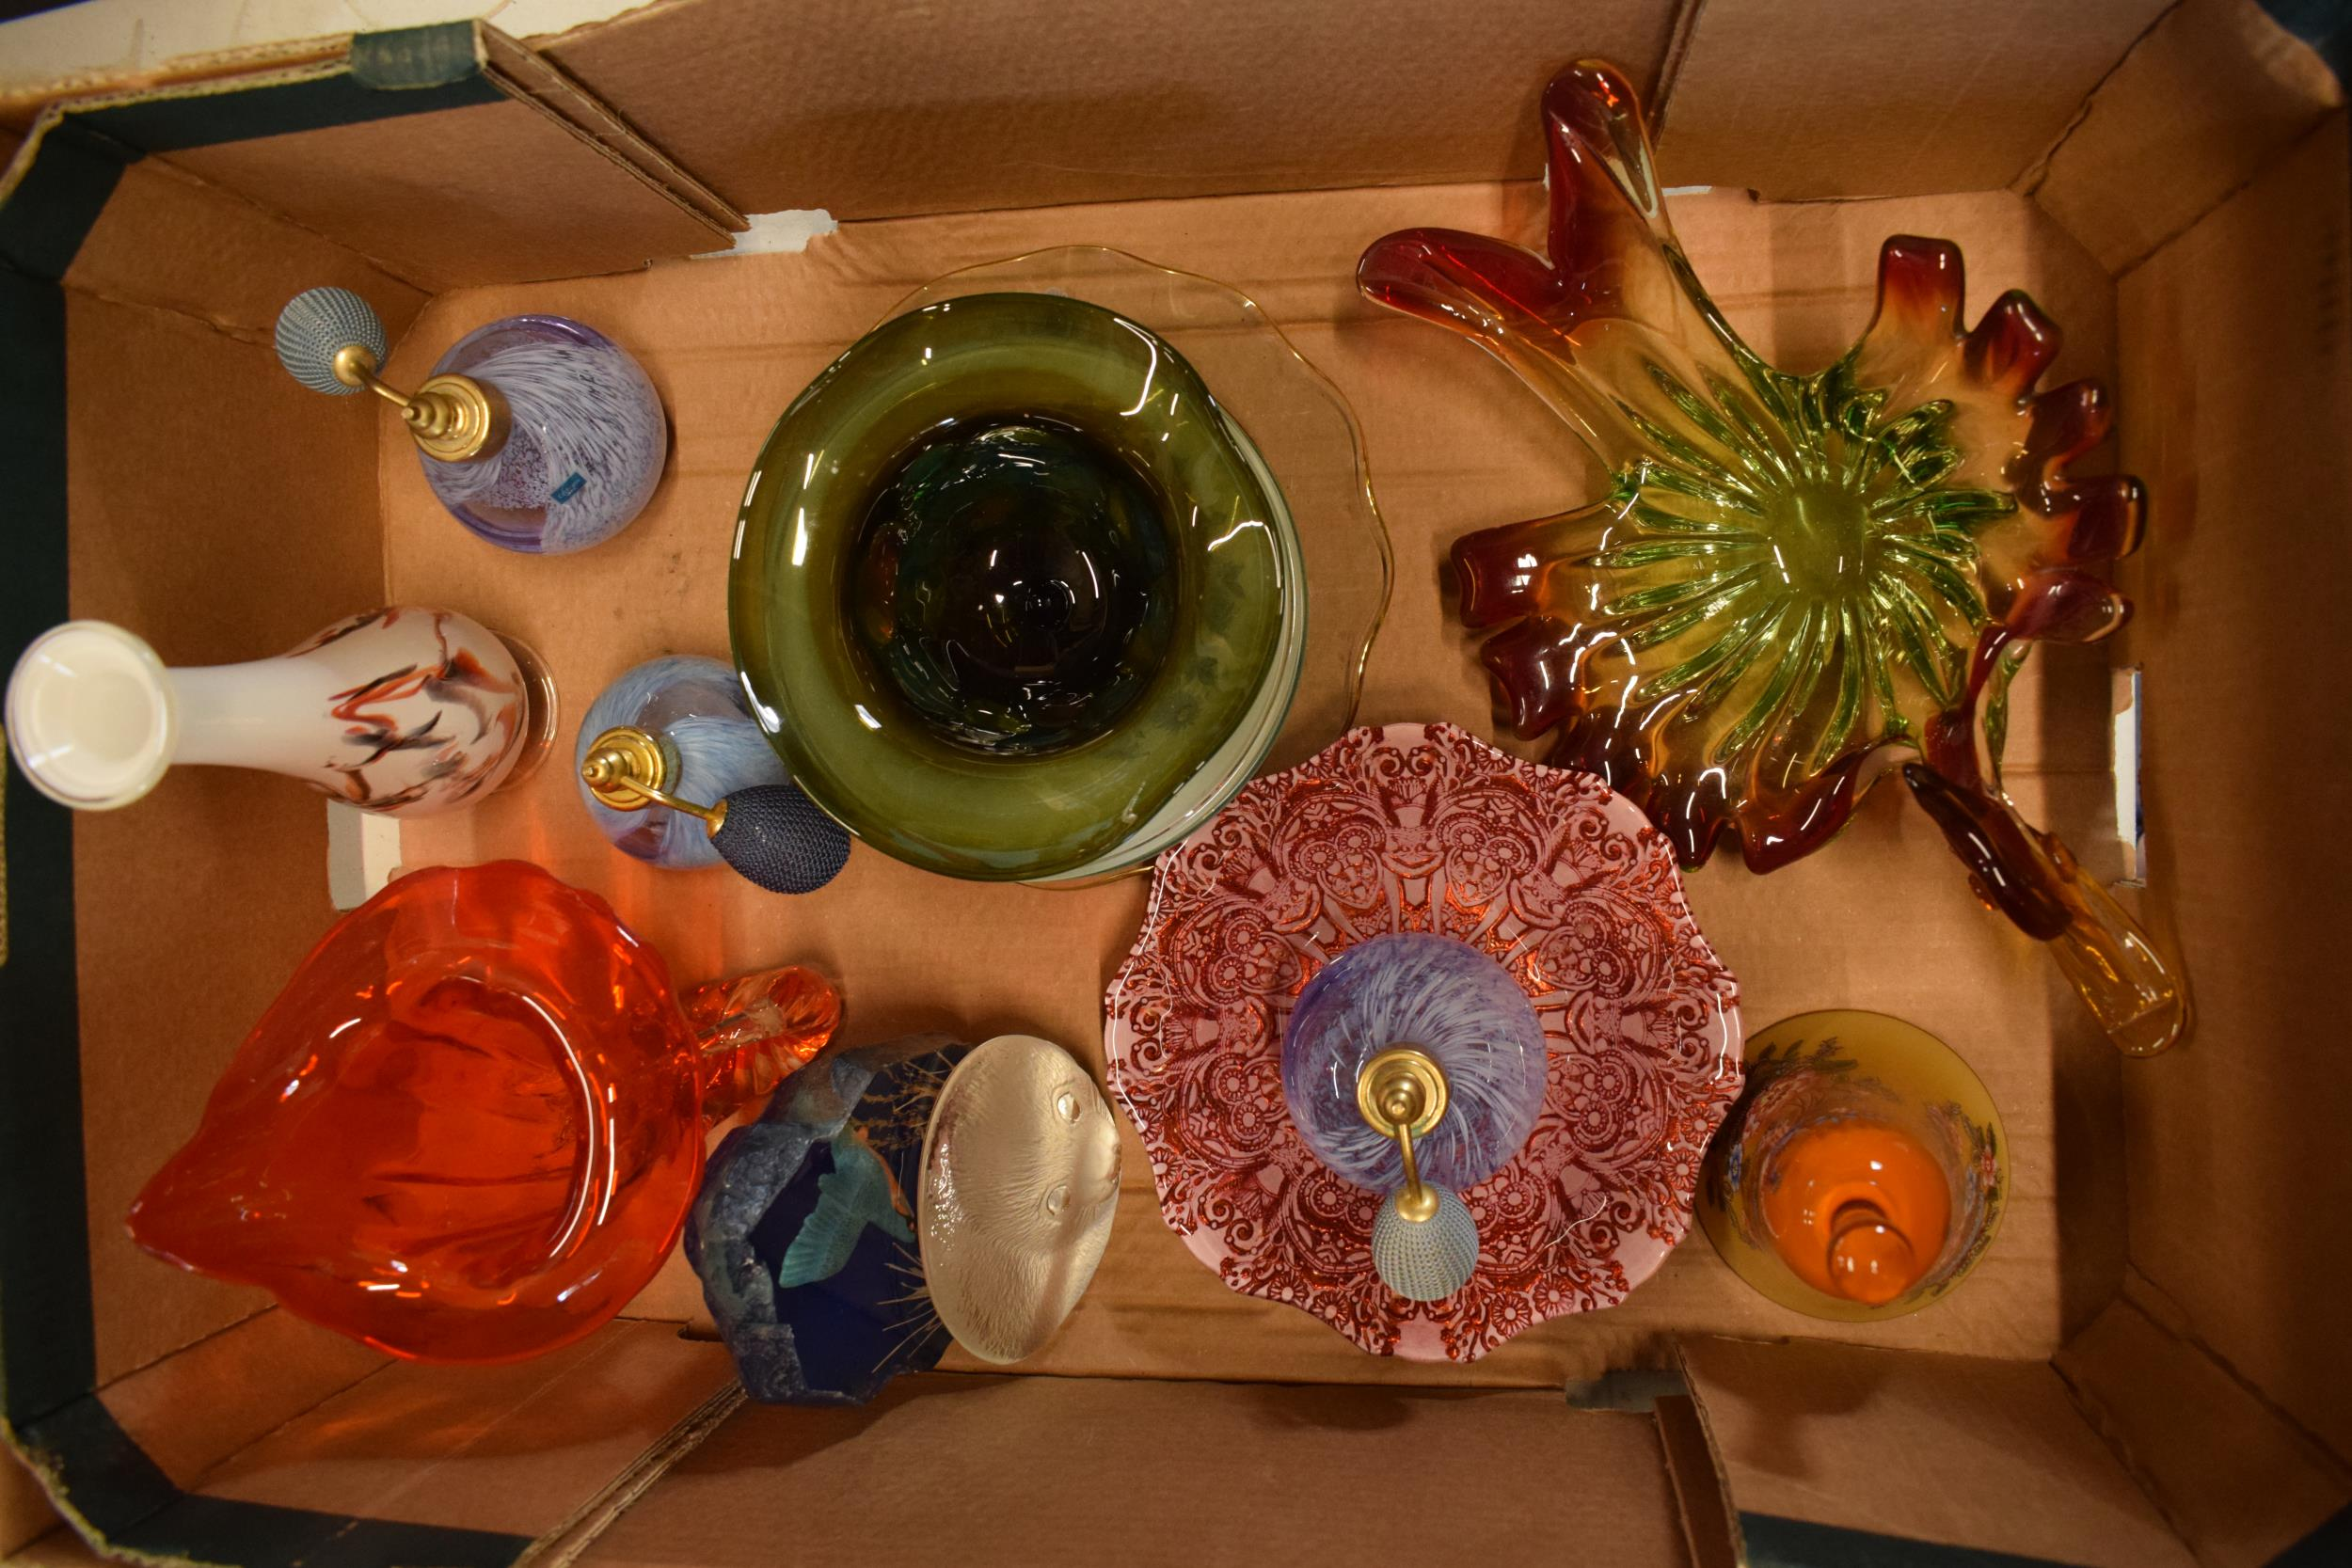 A collection of assorted art / studio glass in the form of vases, Murano style dish, Jack in the